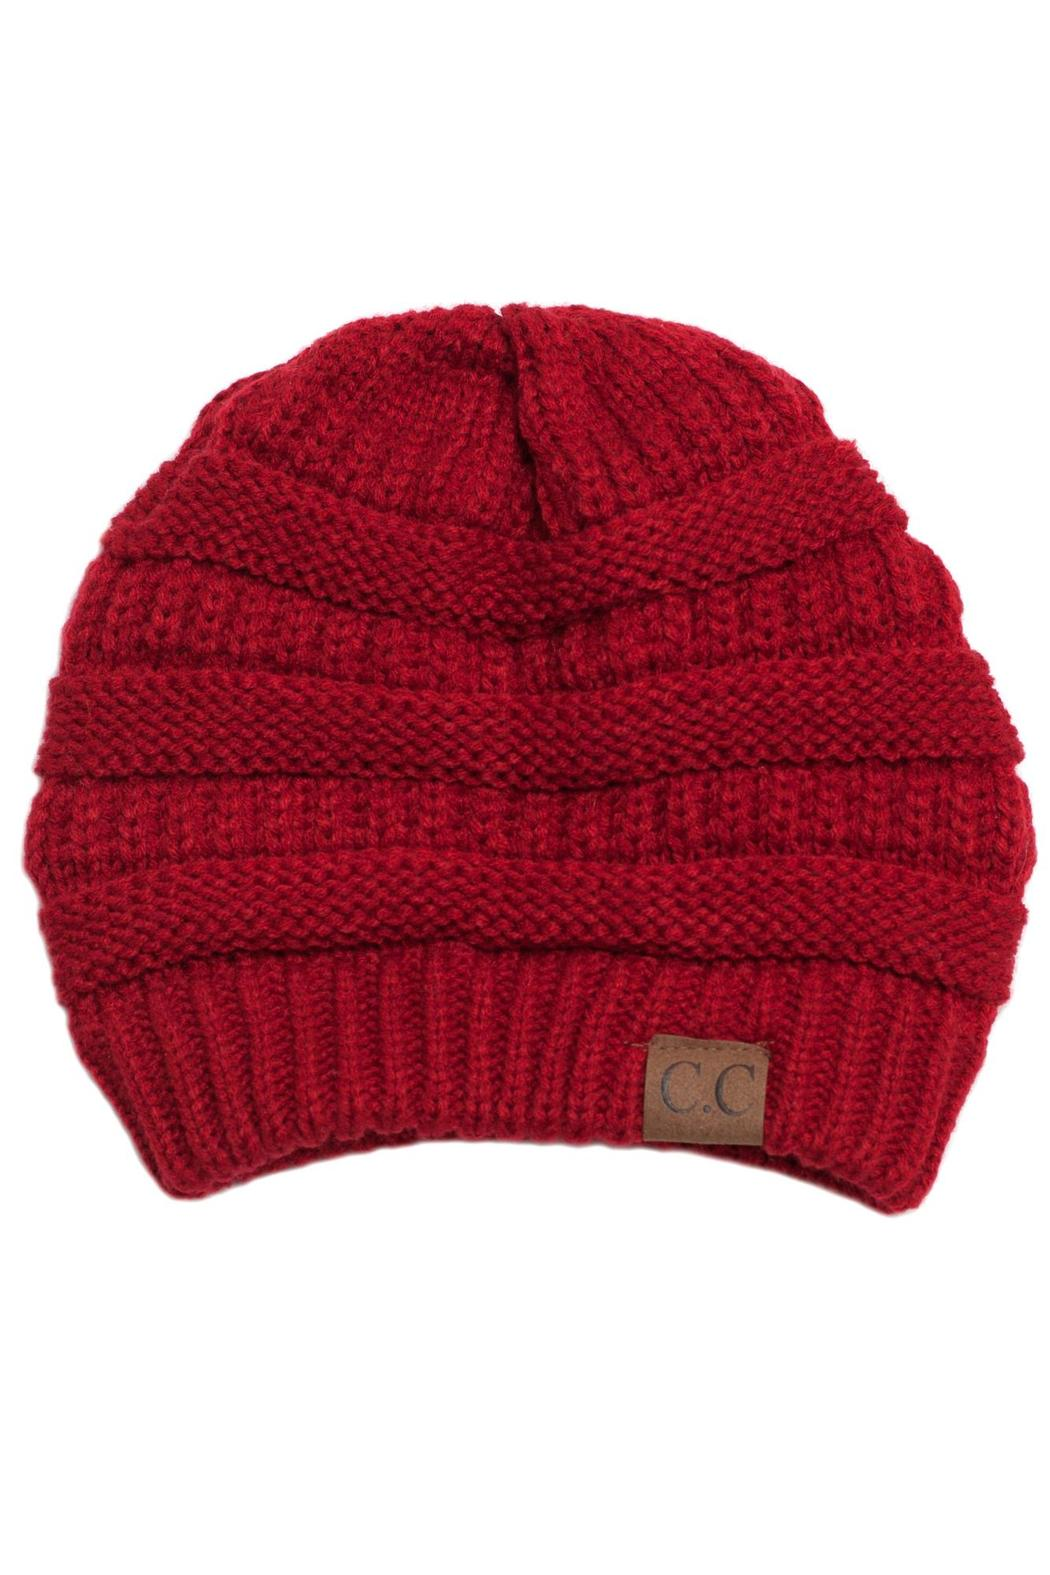 C.C. Red Knit Beanie - Front Cropped Image